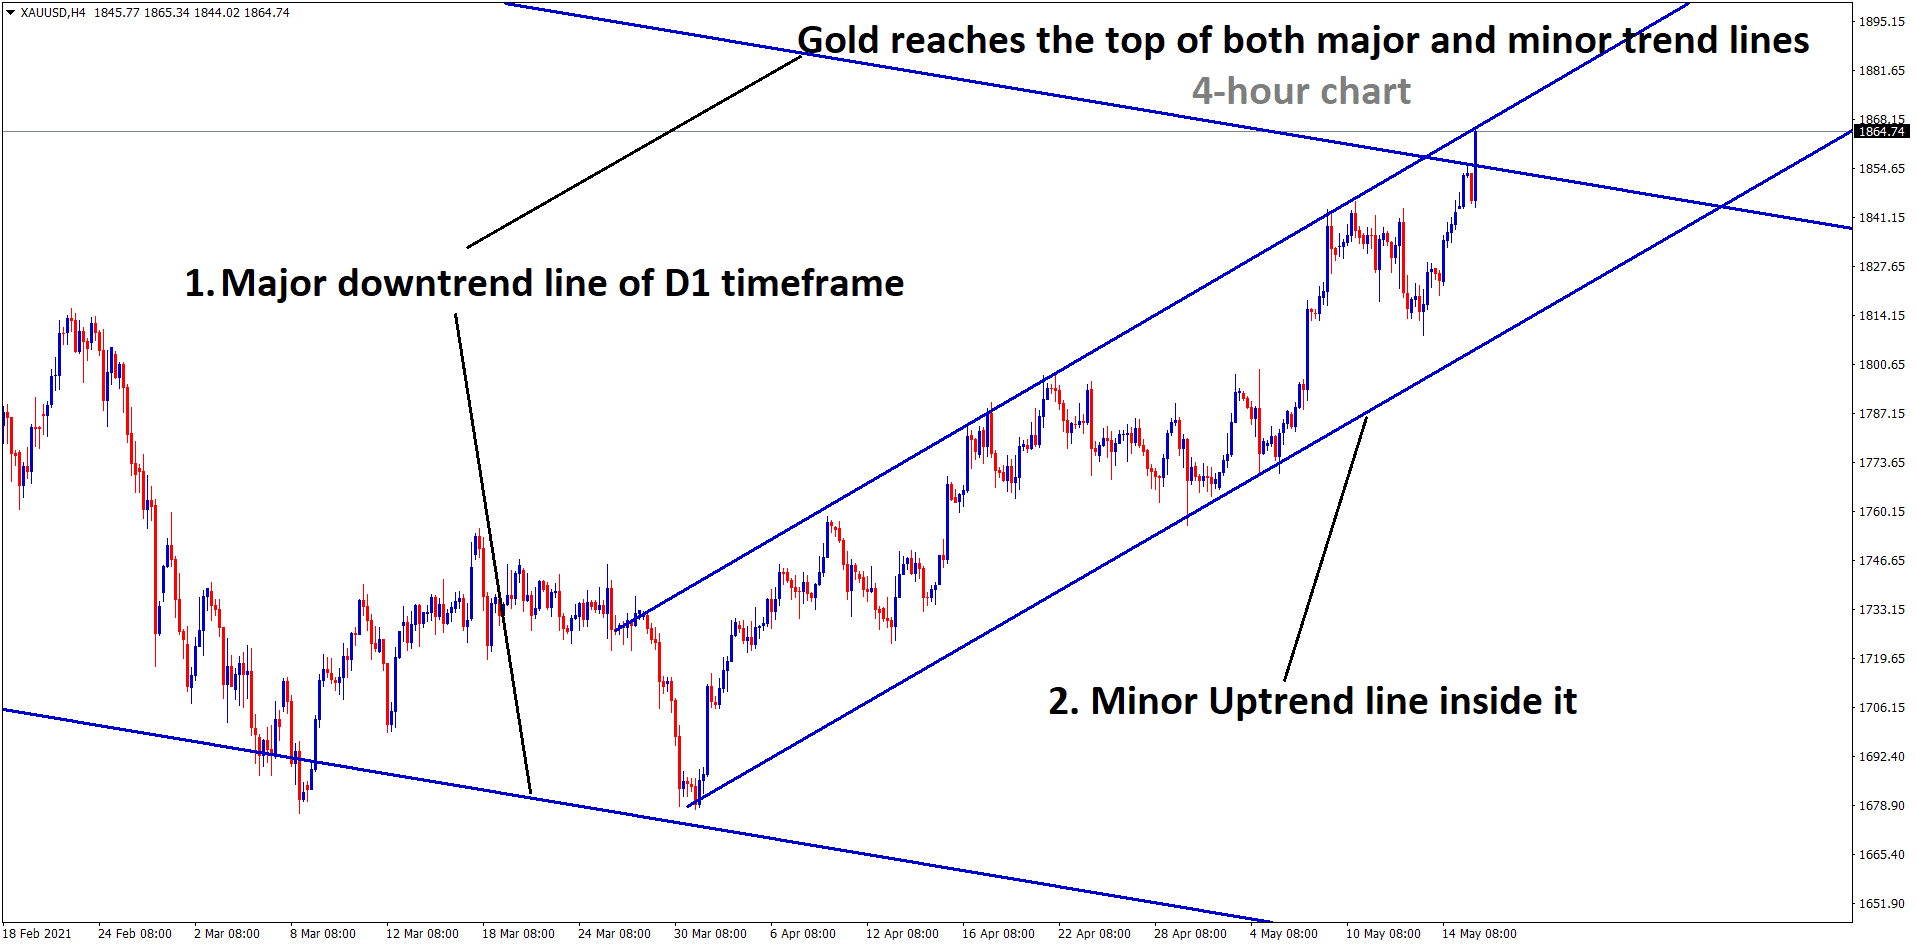 Gold reaches the top of both major and minor trend lines